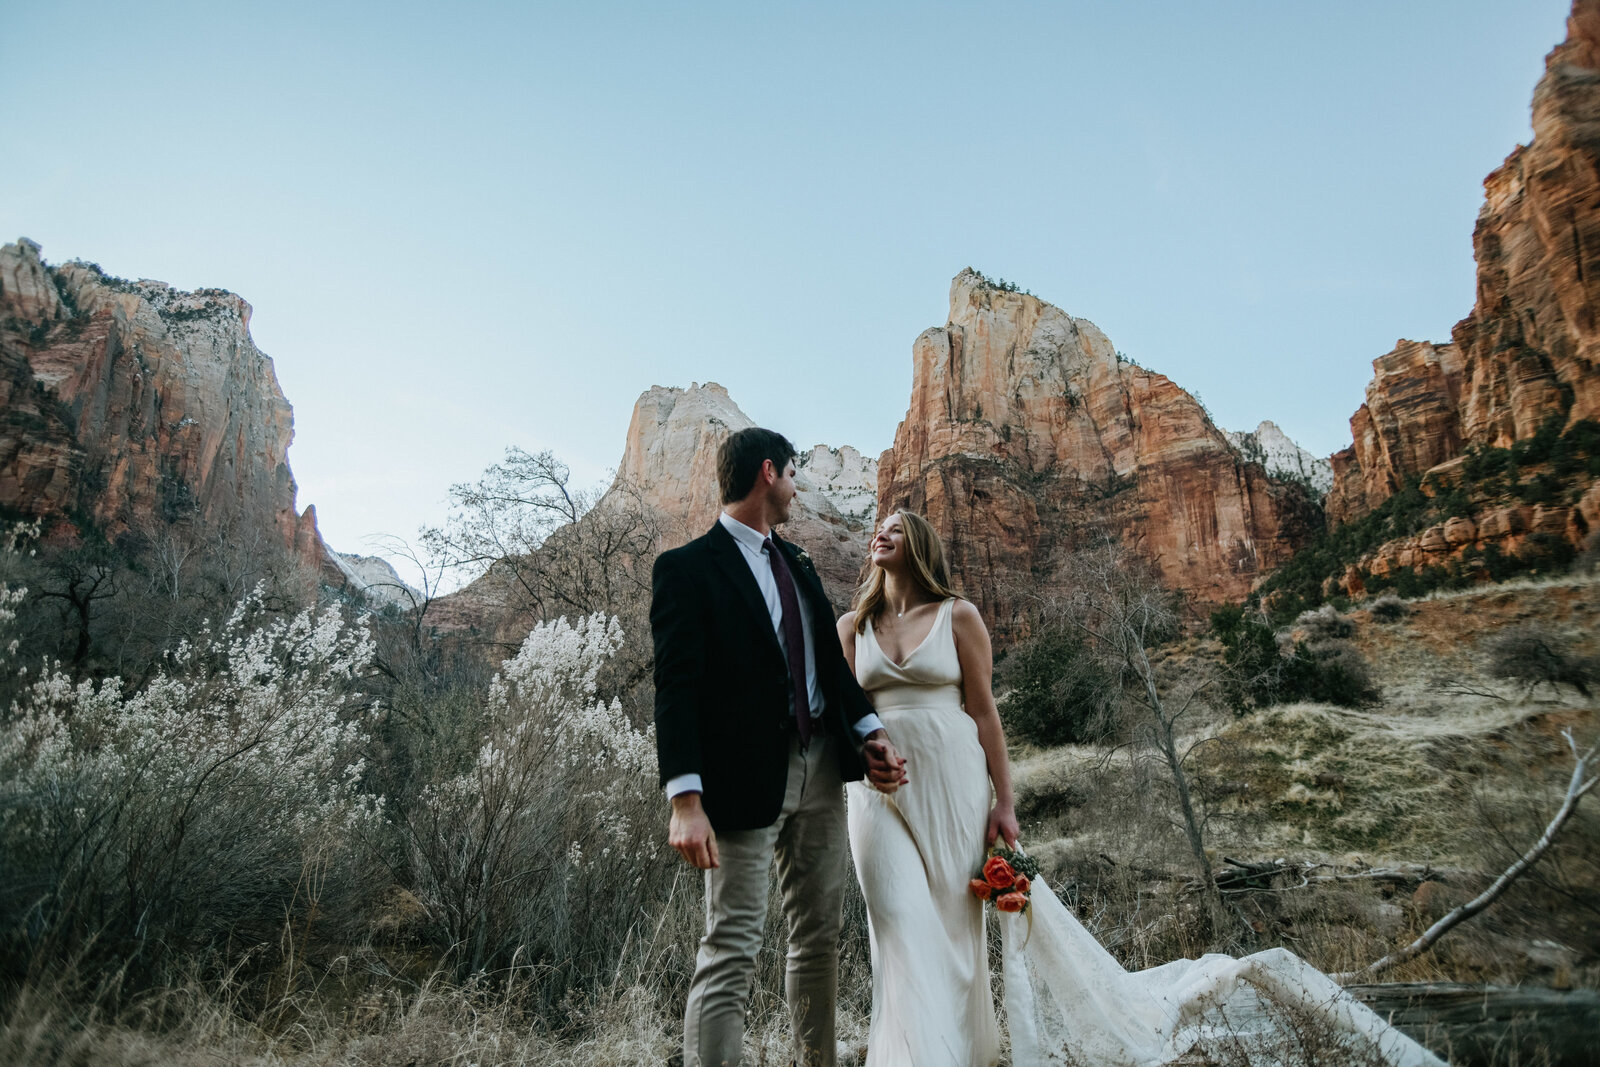 1.5.20 Zion National Park Elopement Photography by Terri Attridge-2